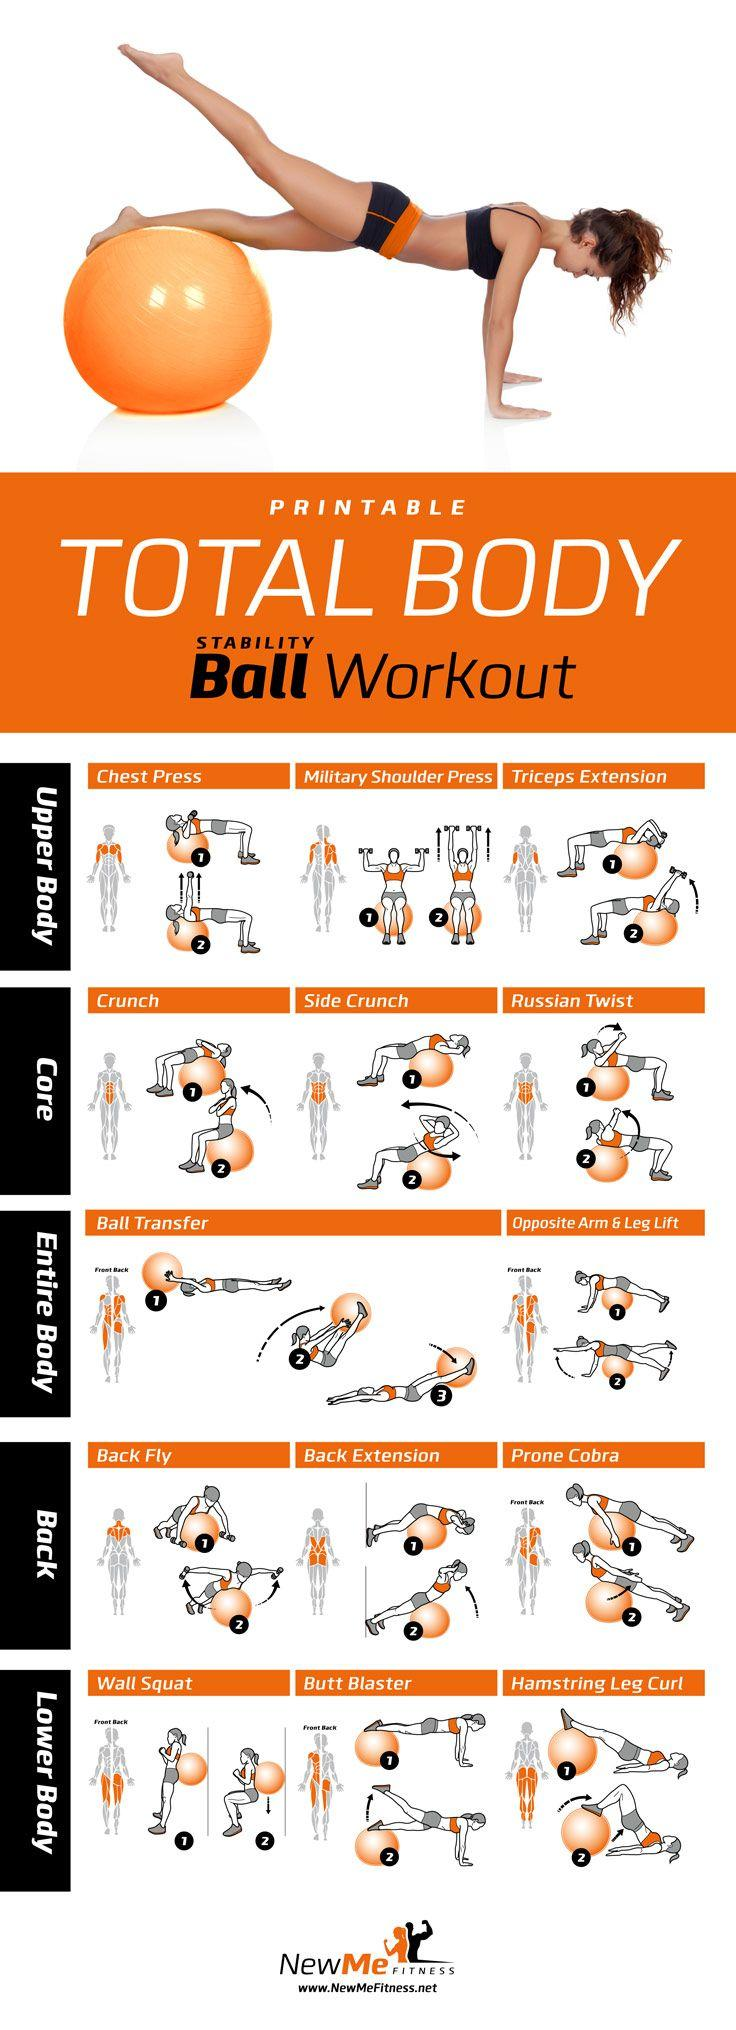 Delicate image inside printable exercise ball workouts